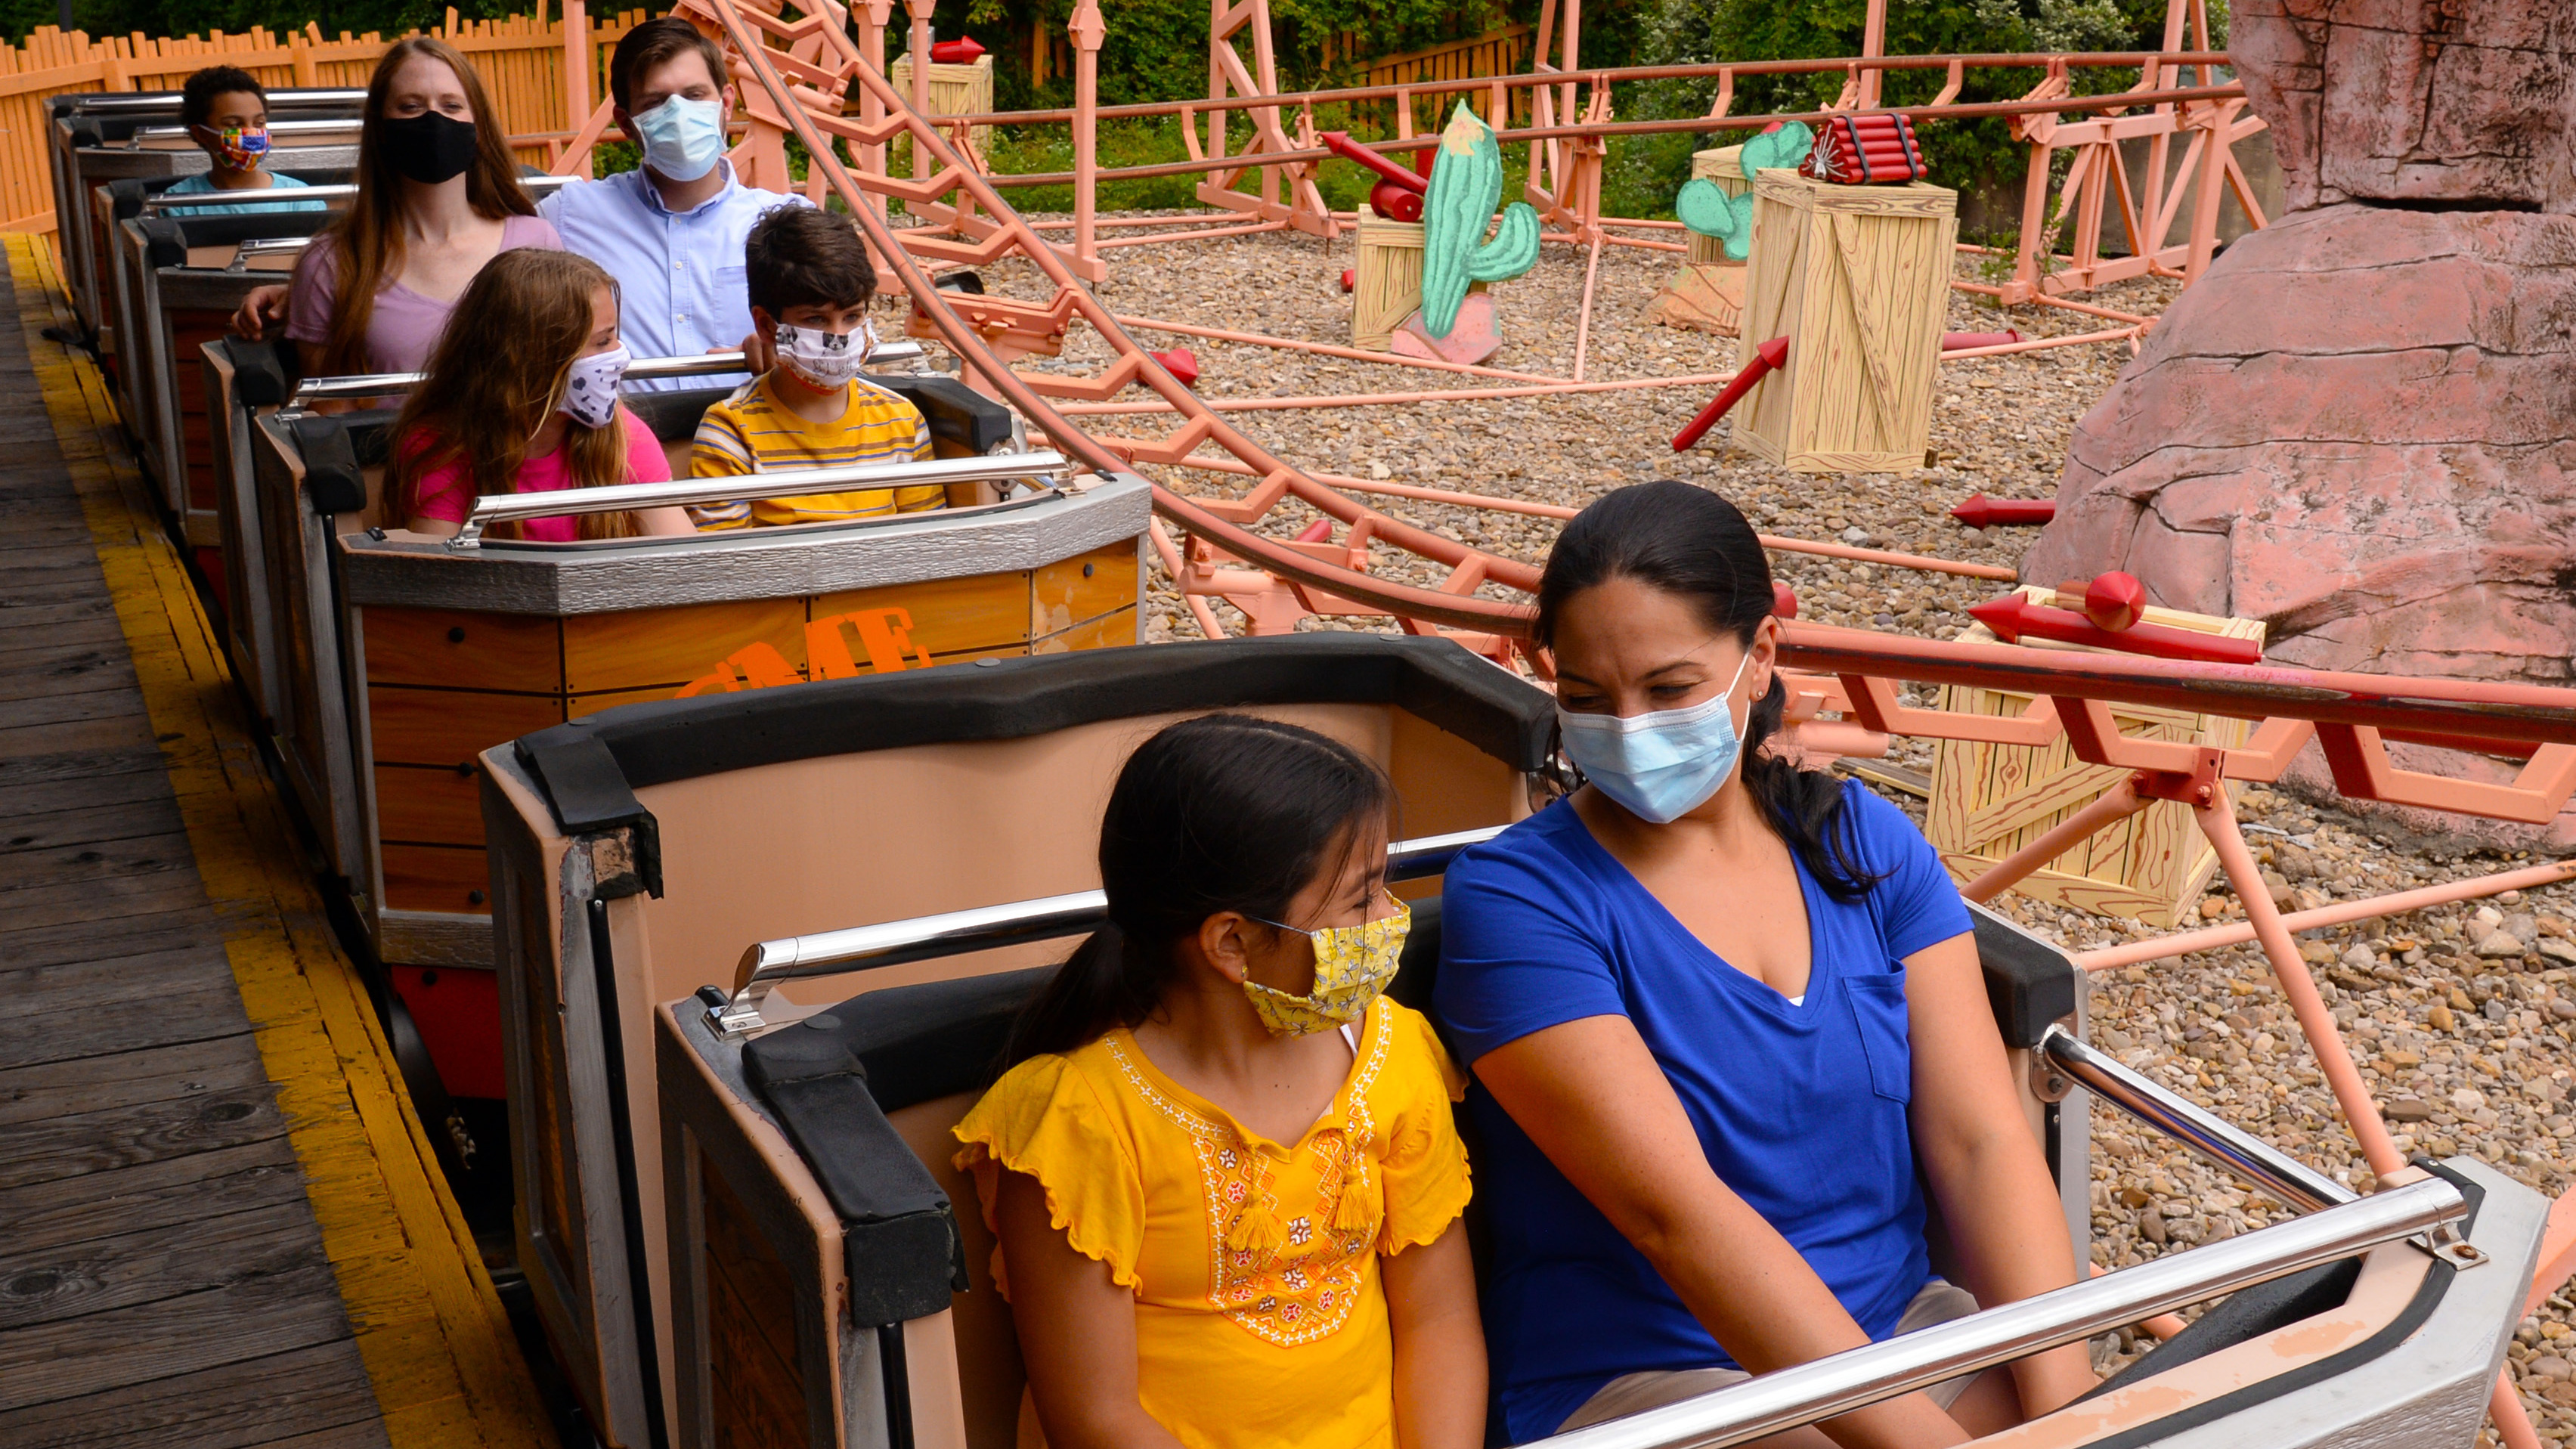 Six Flags Will Reopen Its First Park On June 5 Requiring Masks And Health Checks Coronavirus Updates Npr